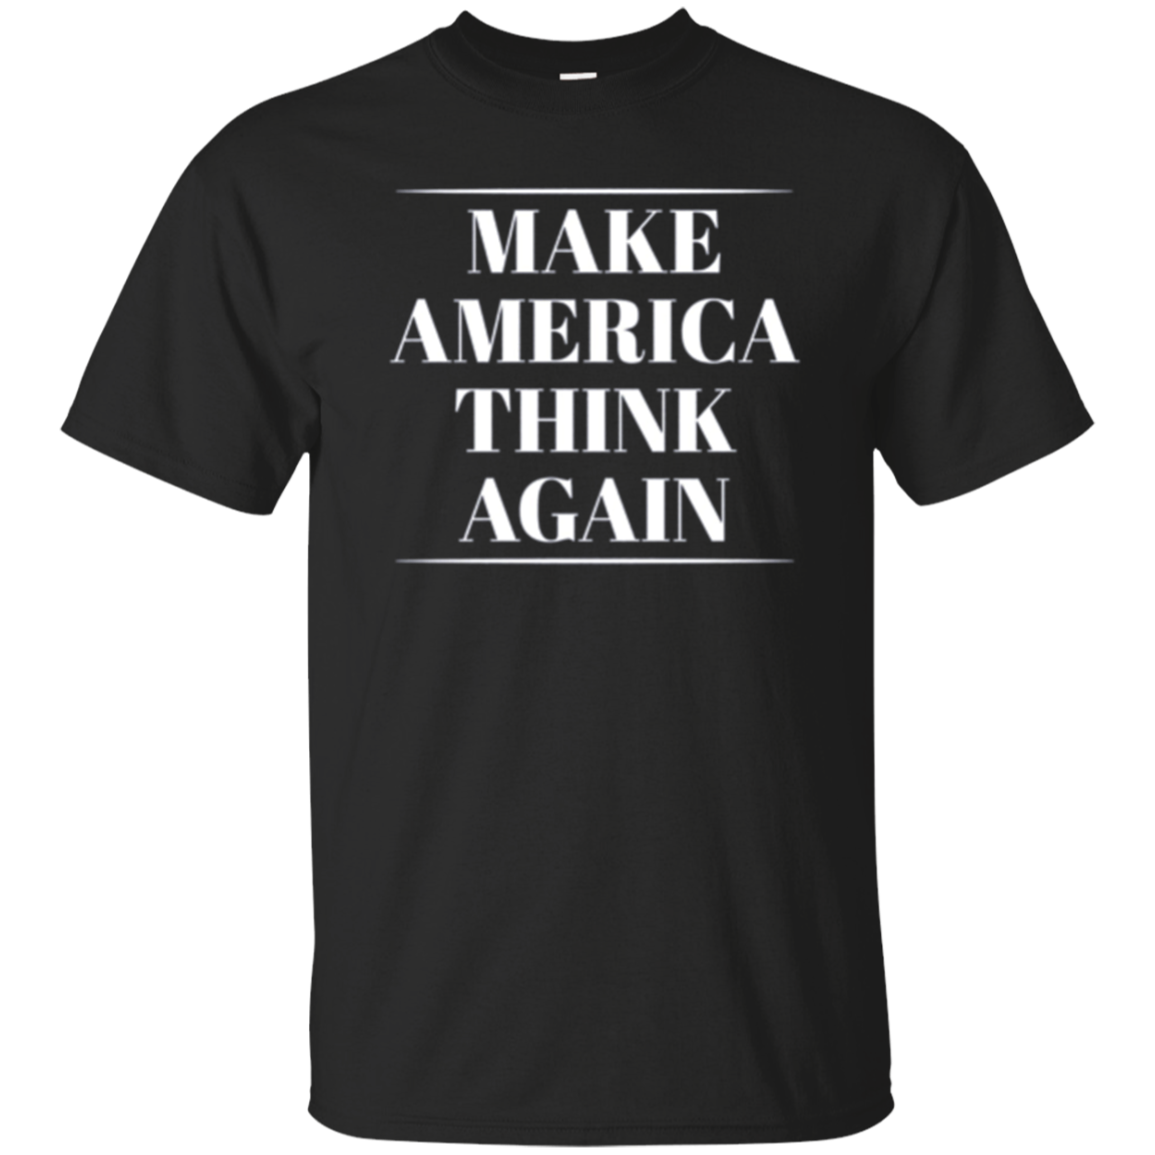 Make America Think Again T-Shirt - Anti-Trump Tee Shirt